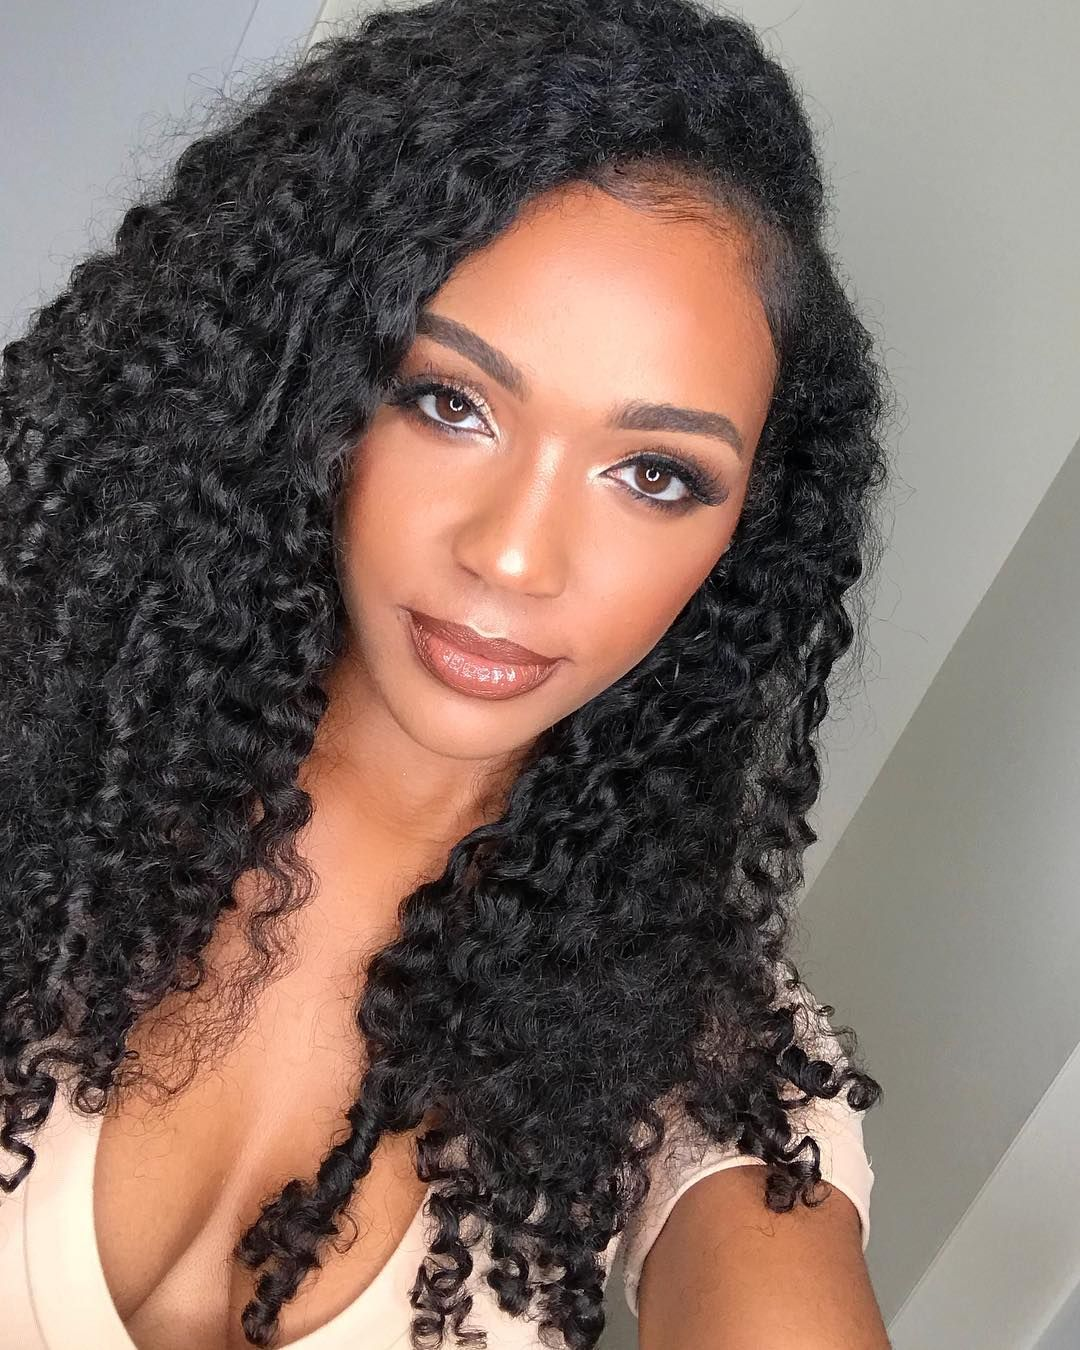 The Best Natural Curly Hair Clip Ins 3c 4a Hergivenhair